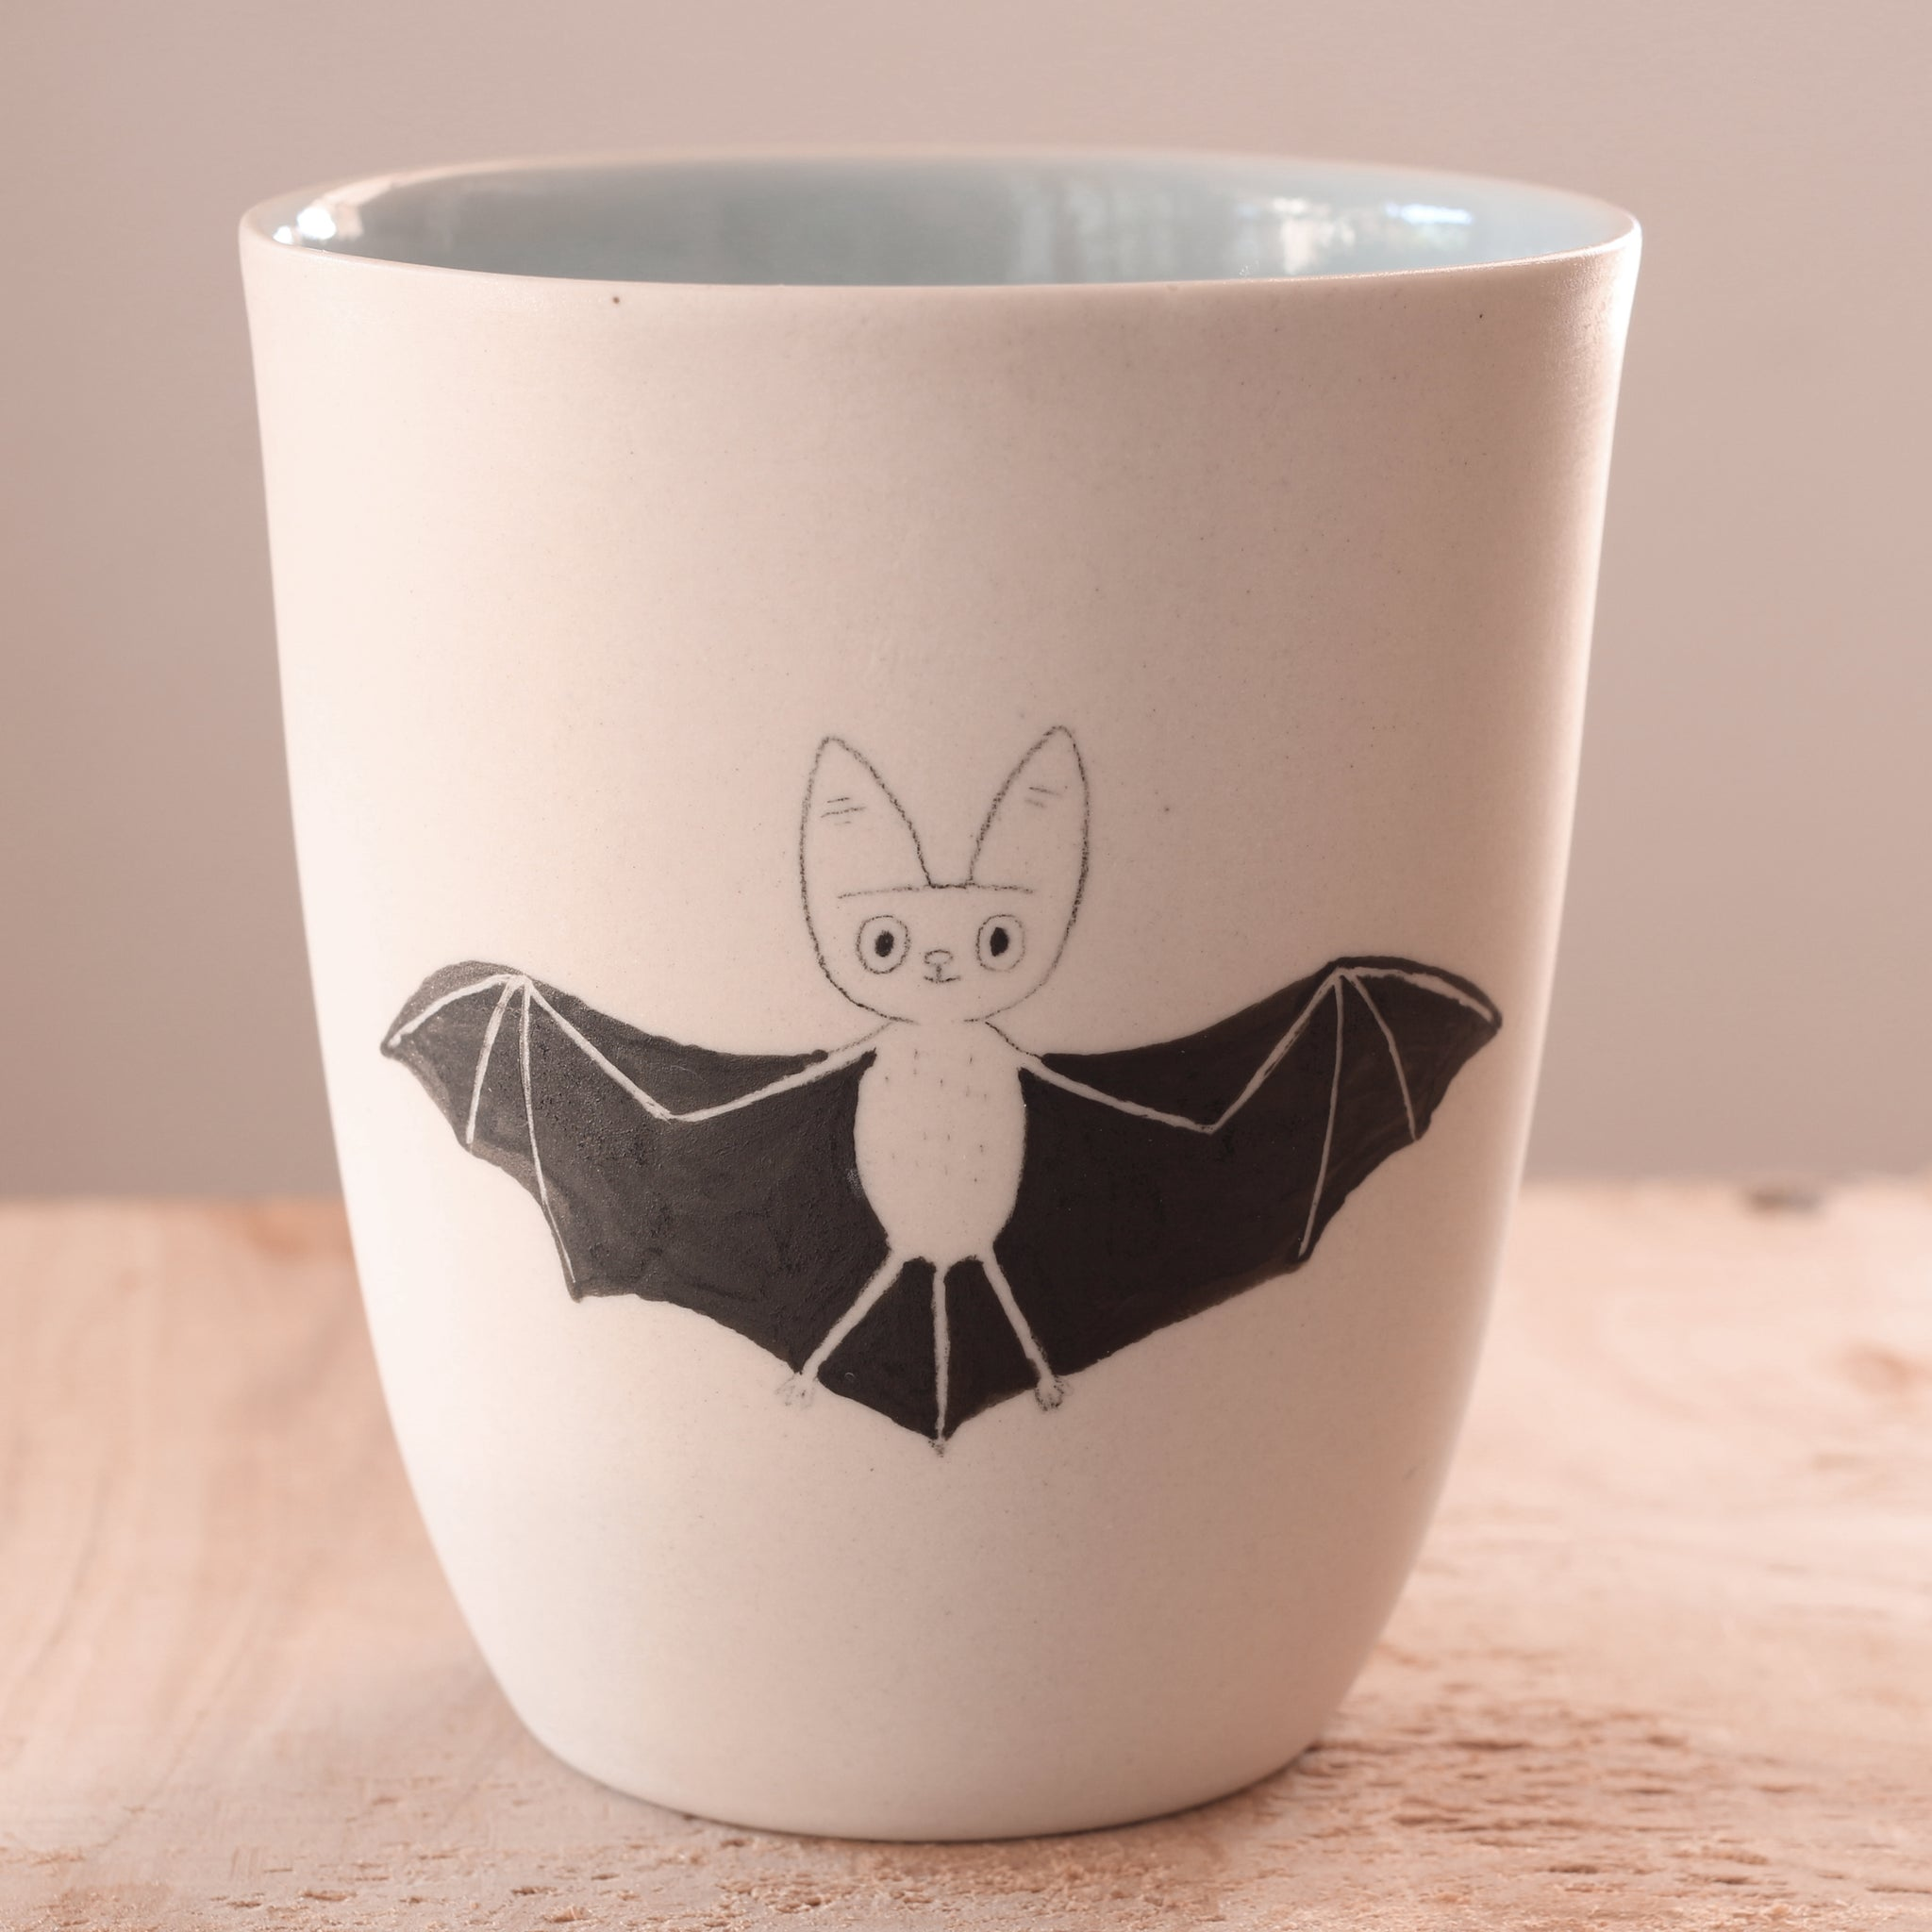 Bat - Hand Illustrated Cup